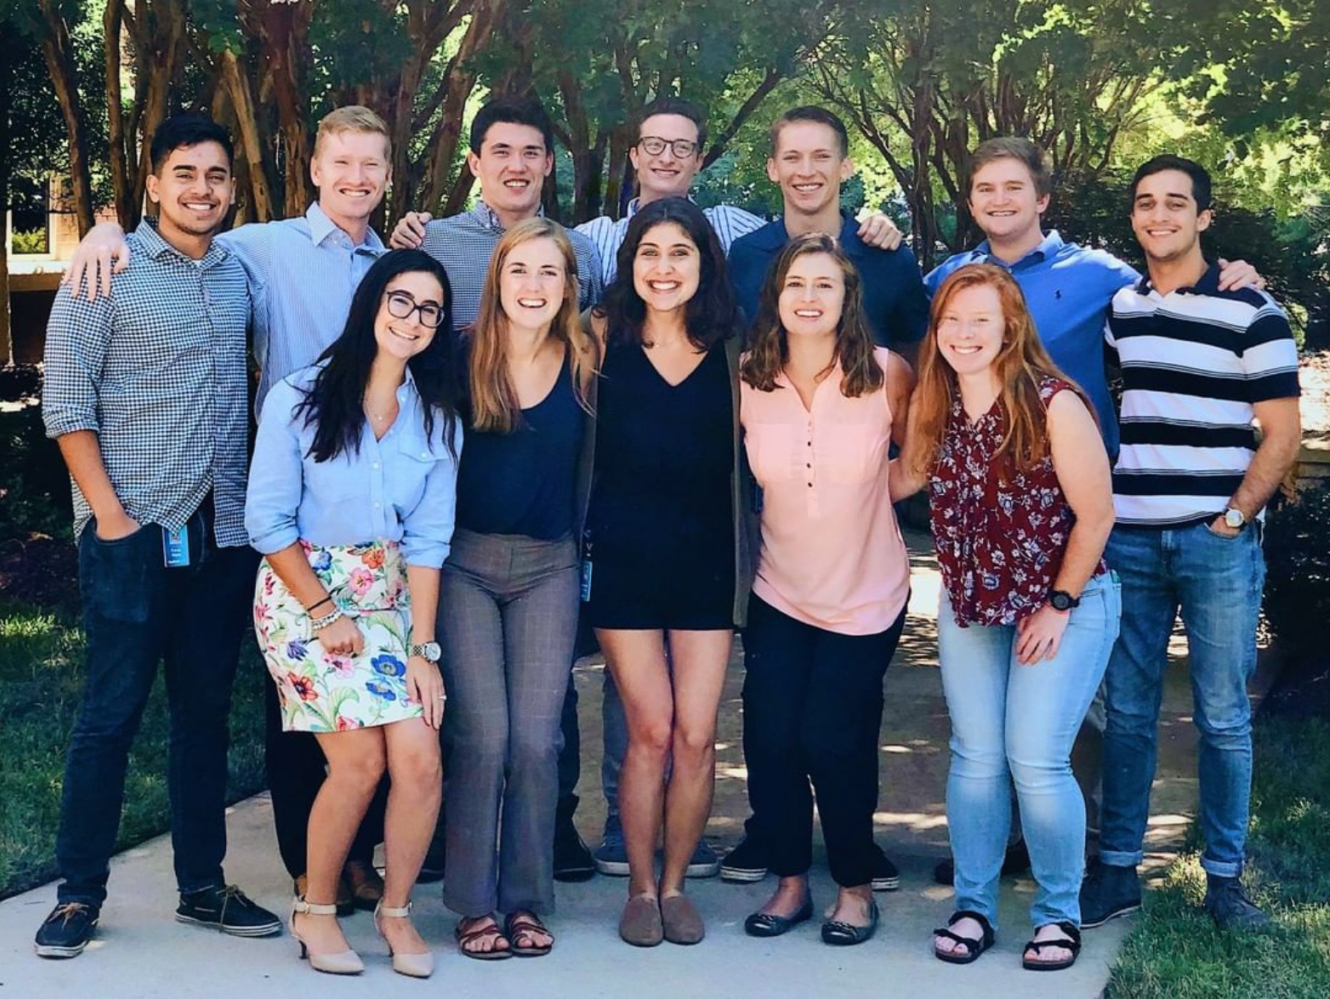 Group photo of an internship class, outside standing under the trees